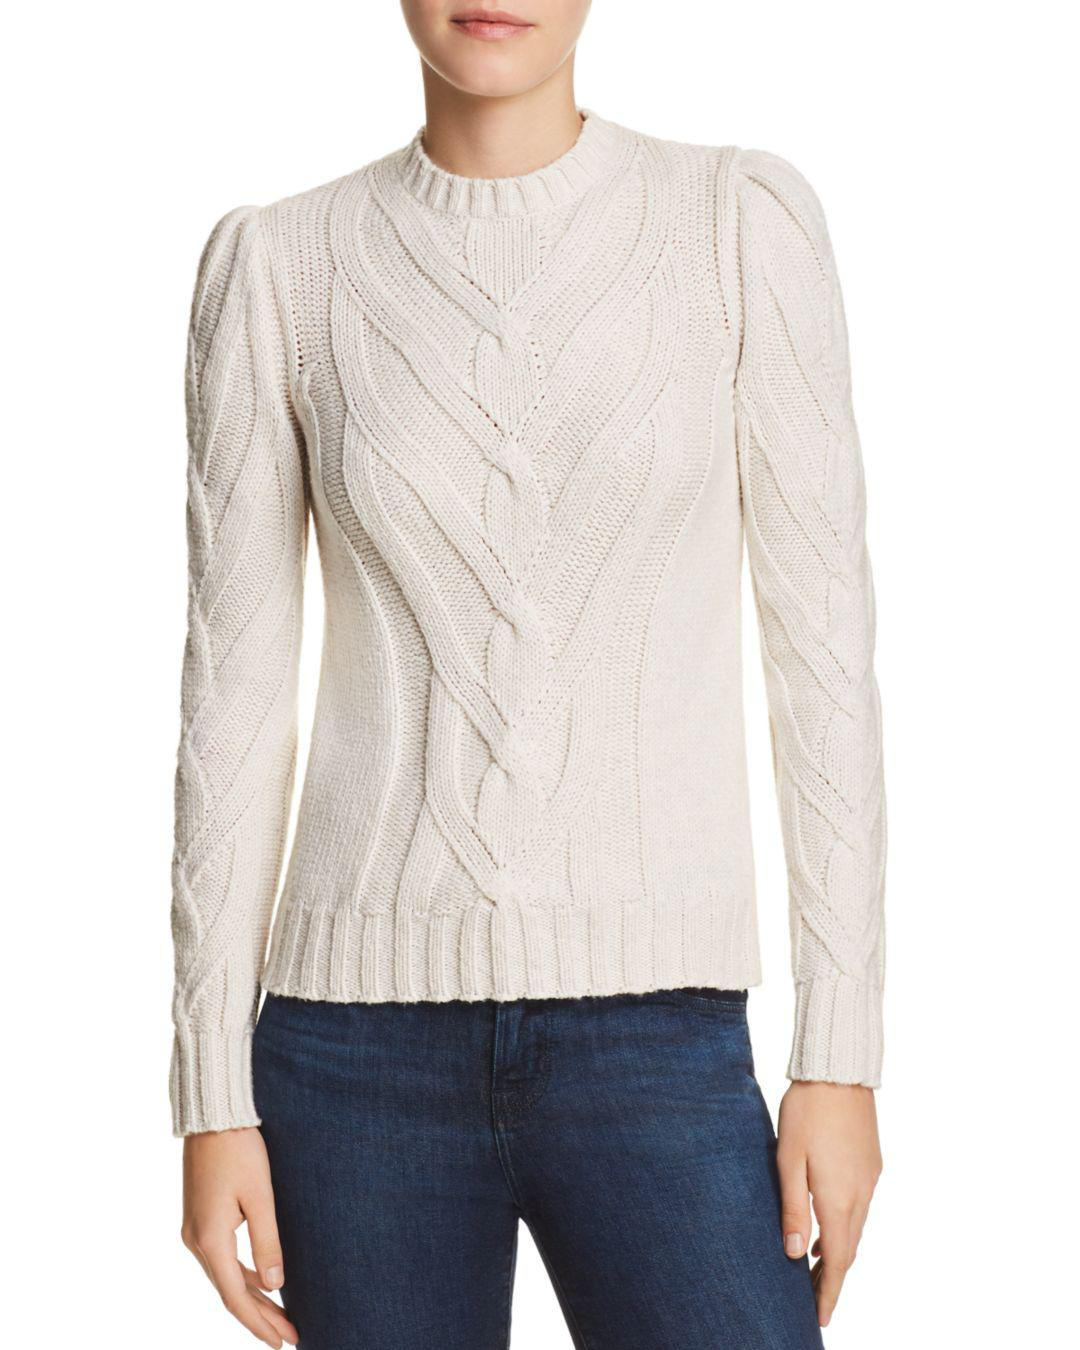 9e1ead053 Rebecca Taylor La Vie Cozy Cable Sweater in White - Lyst